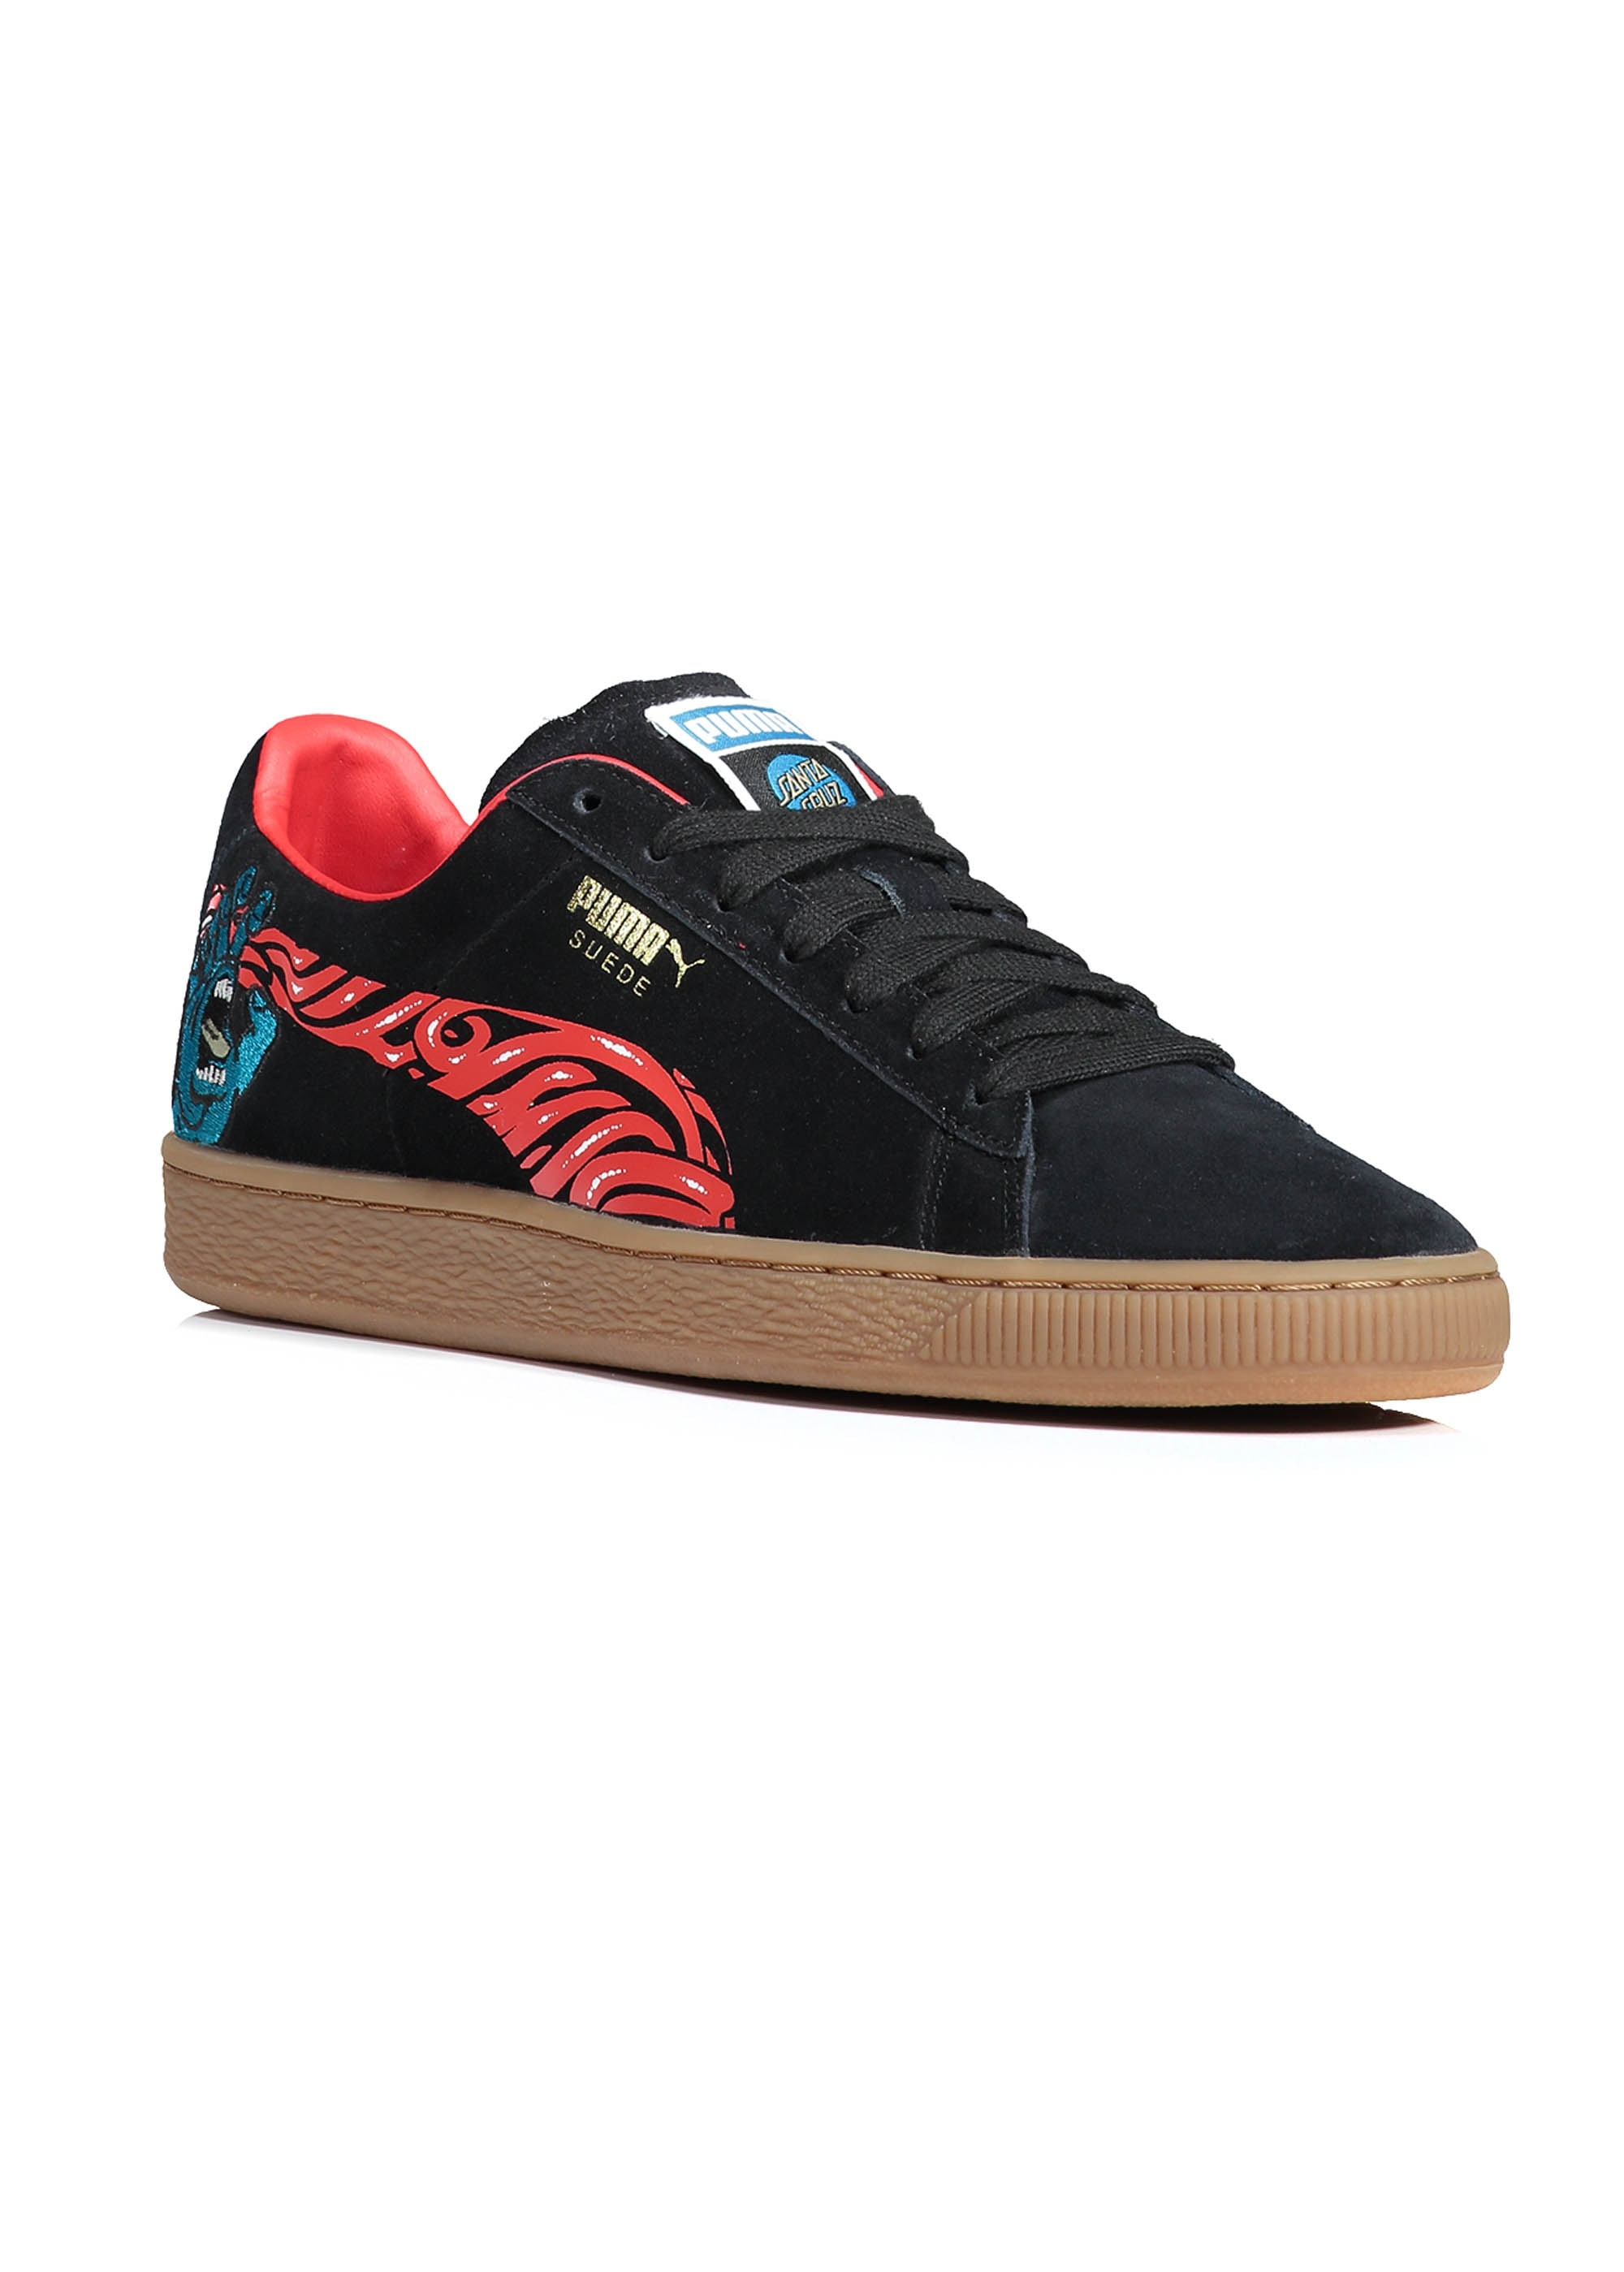 Puma x Santa Cruz Suede Classic - Black   Red - Triads Mens from ... c1bd1bcc7